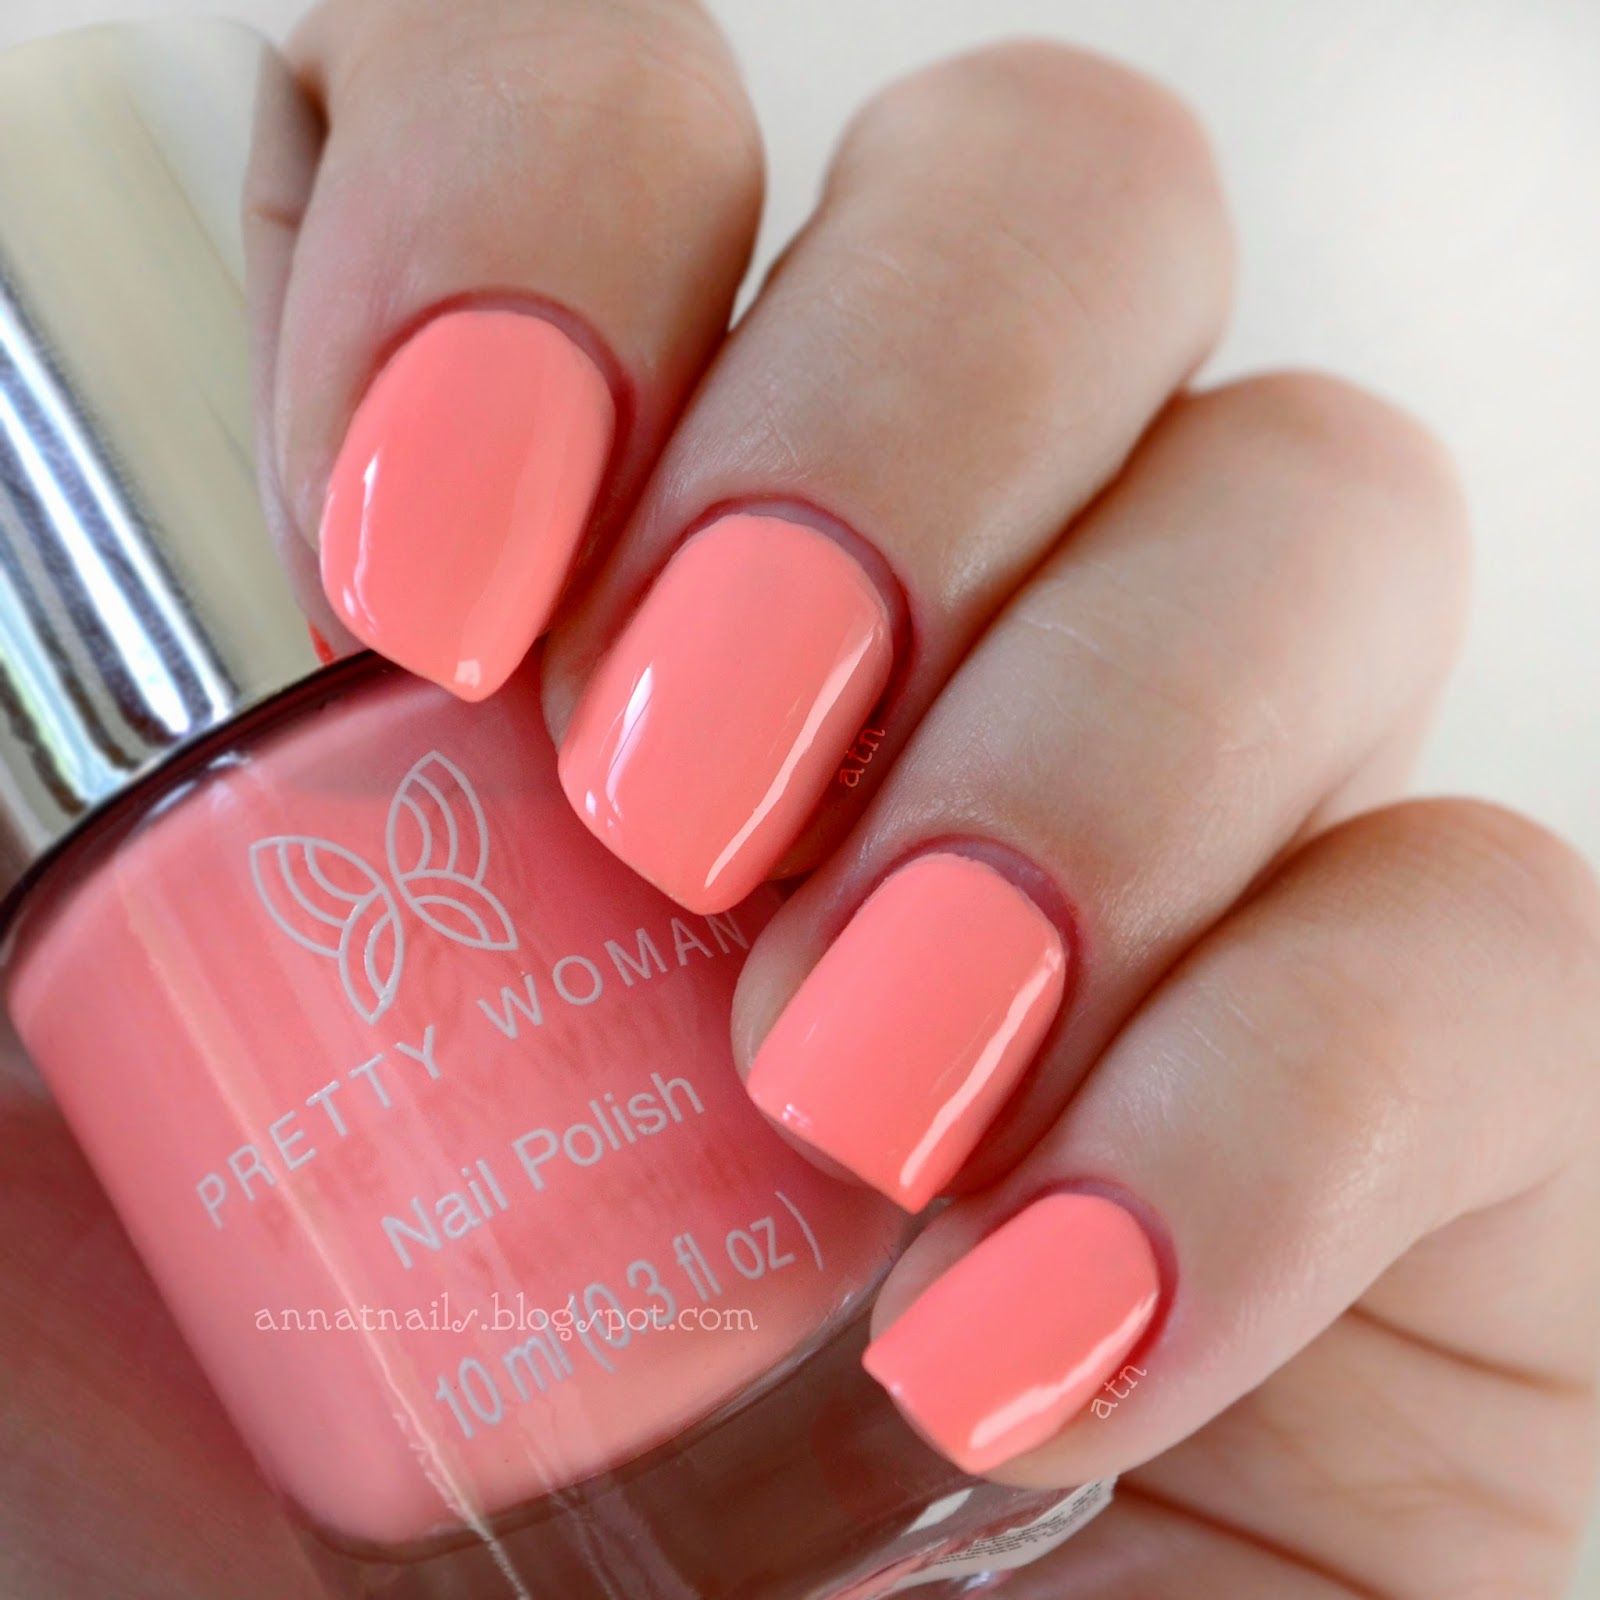 Pretty Woman Nail Polish Swatches & Review | annatnails